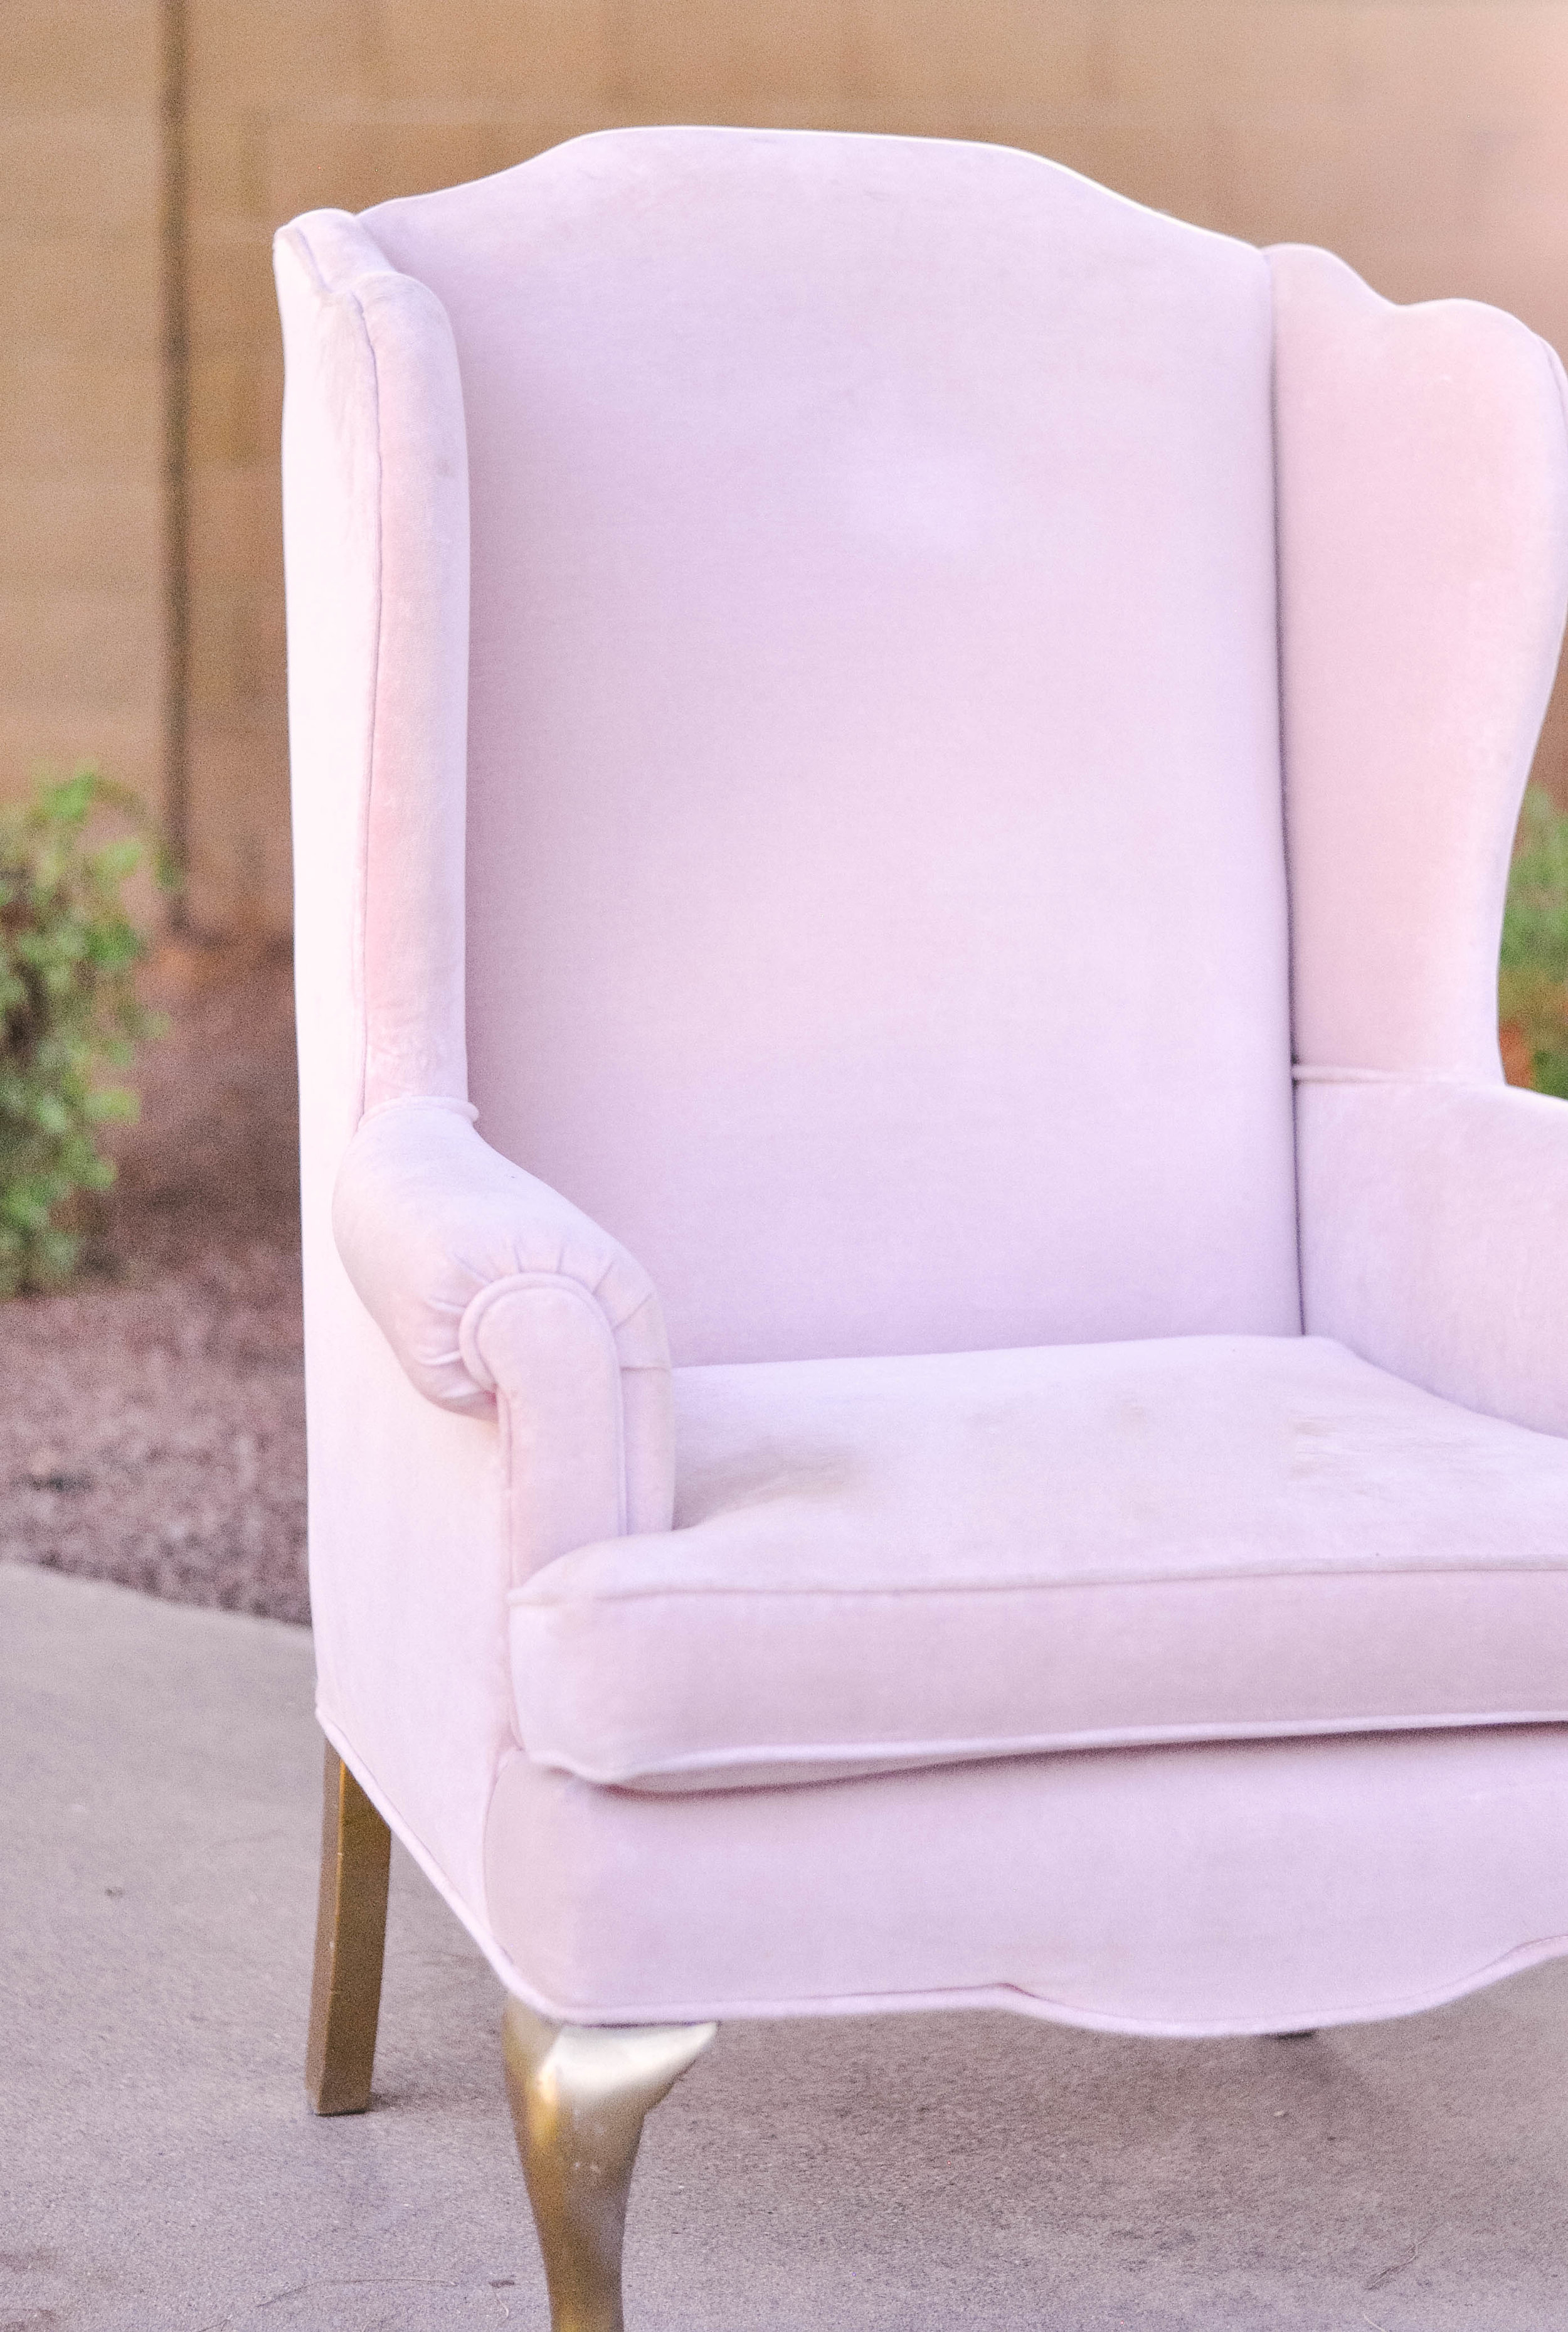 How-To-Reupholster-A-Chair-3.jpg